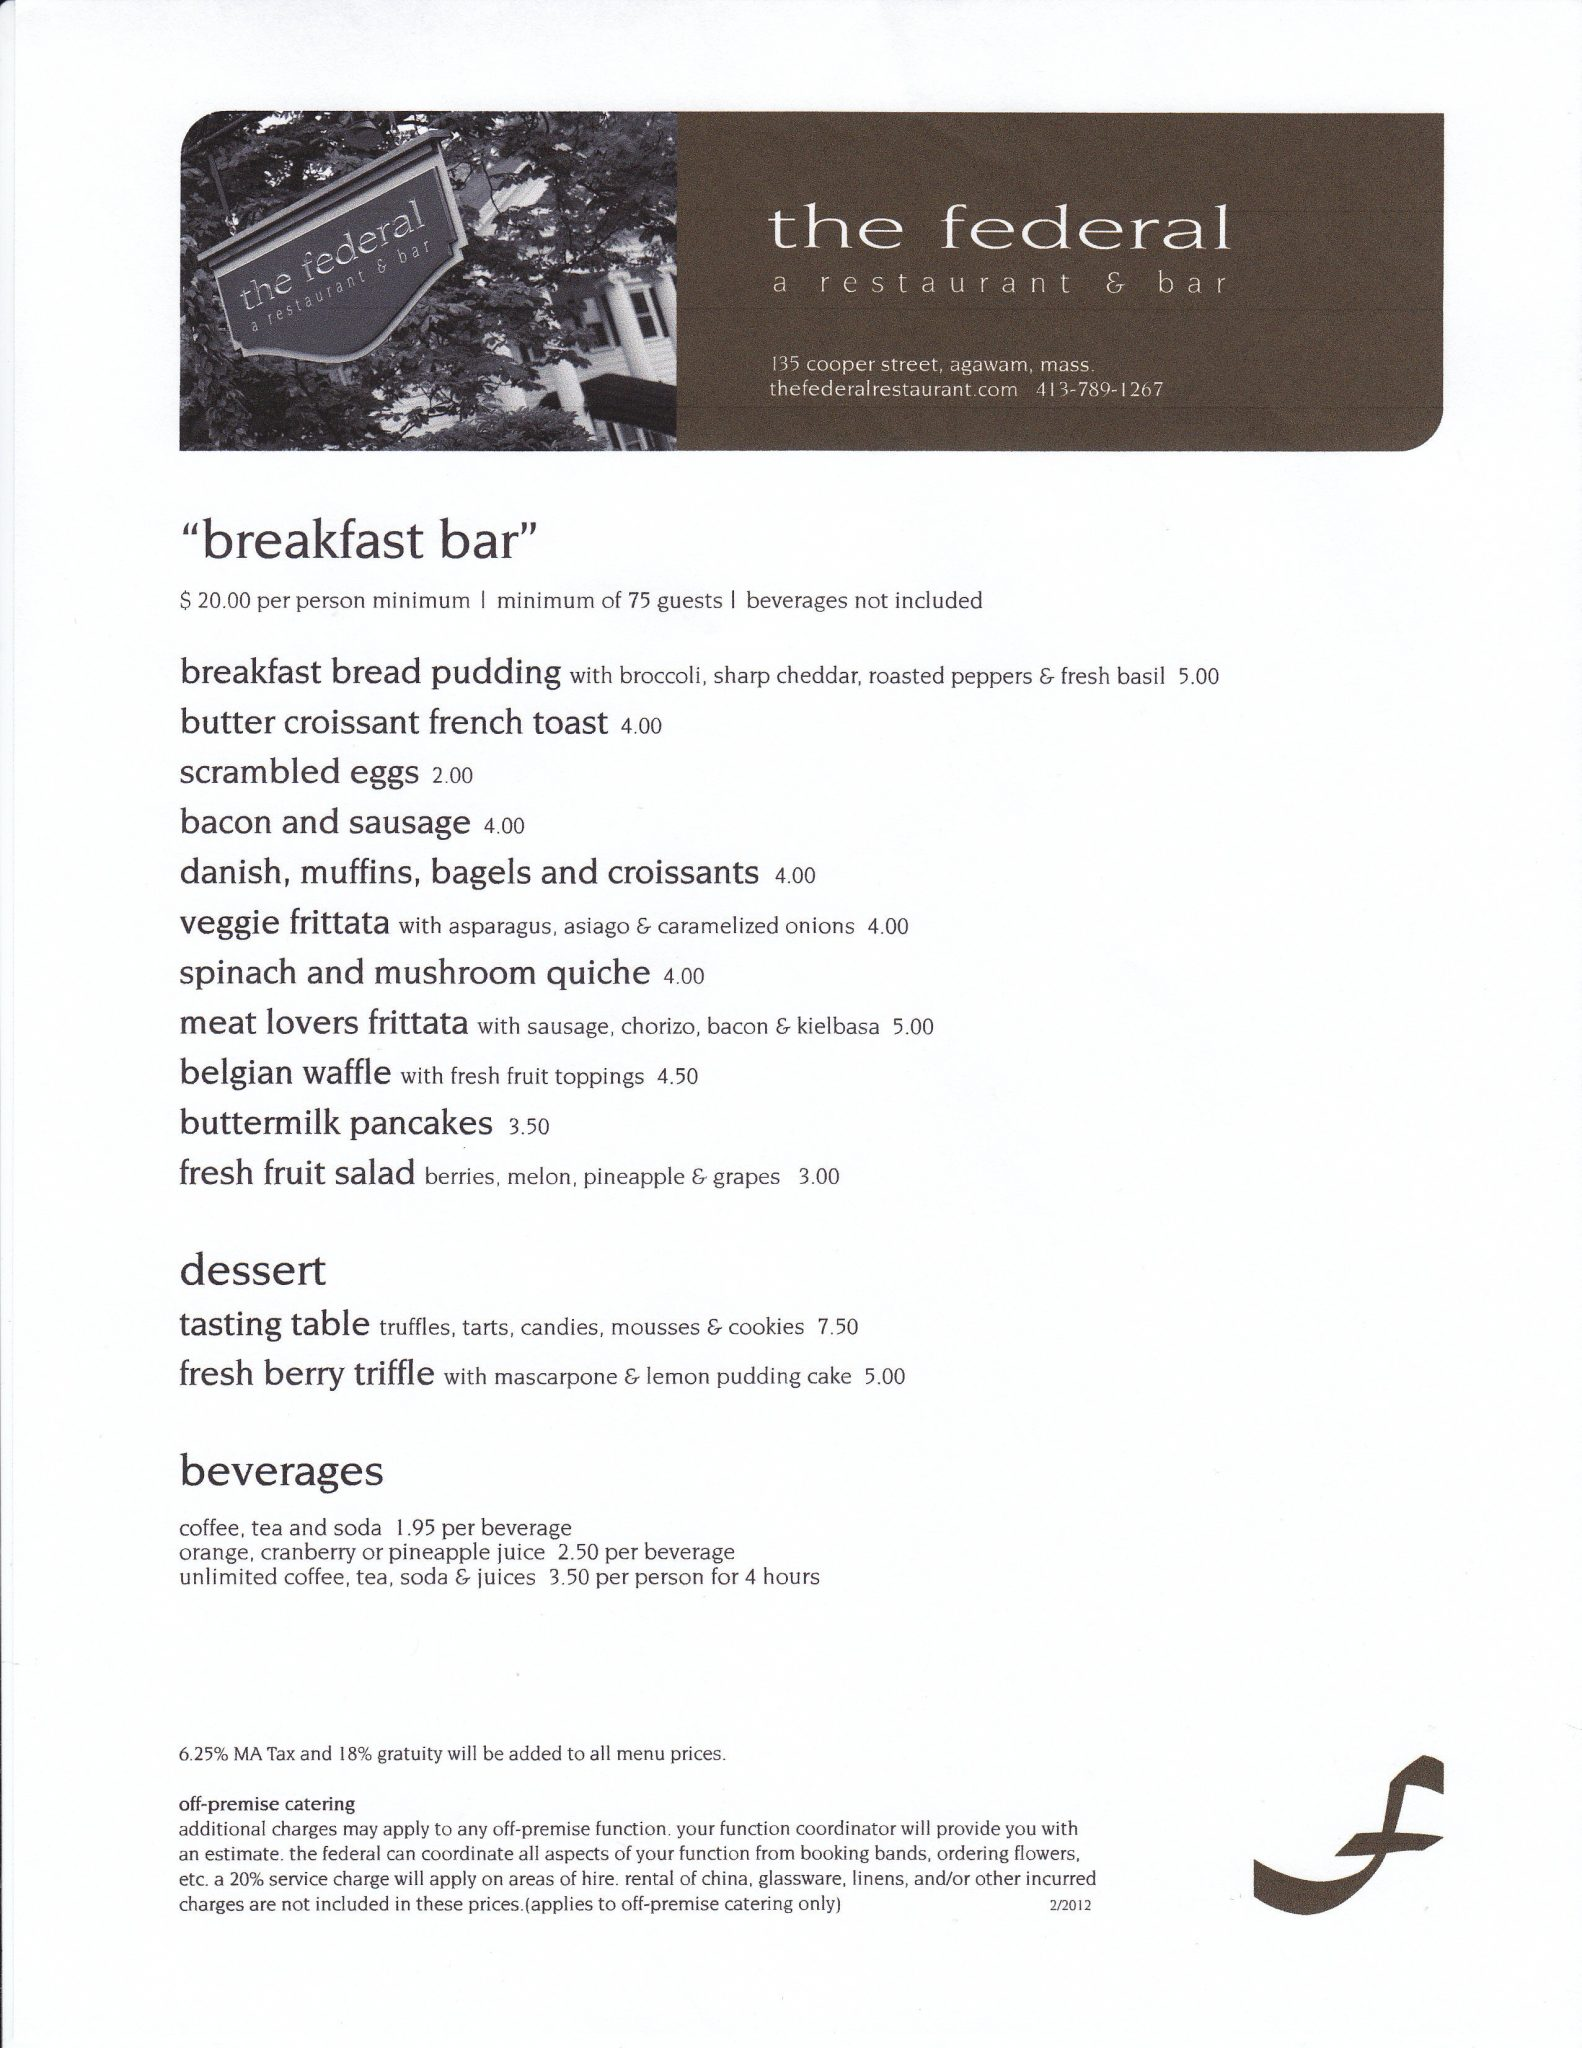 The Federal_NEW_BC_breakfast